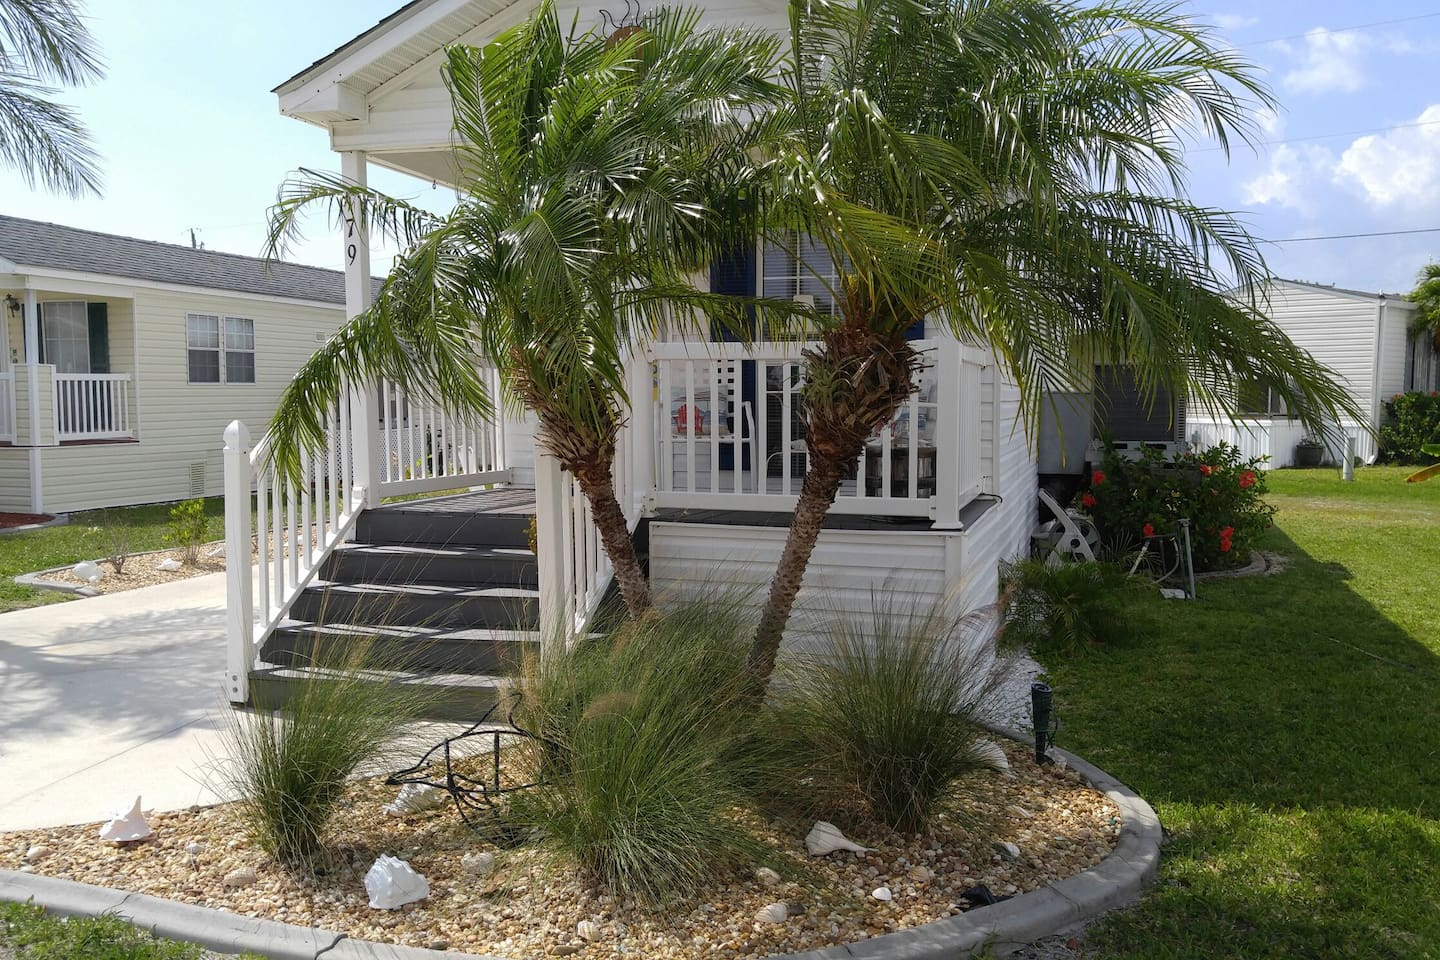 Tropical landscape gives the property a true Florida look and feel